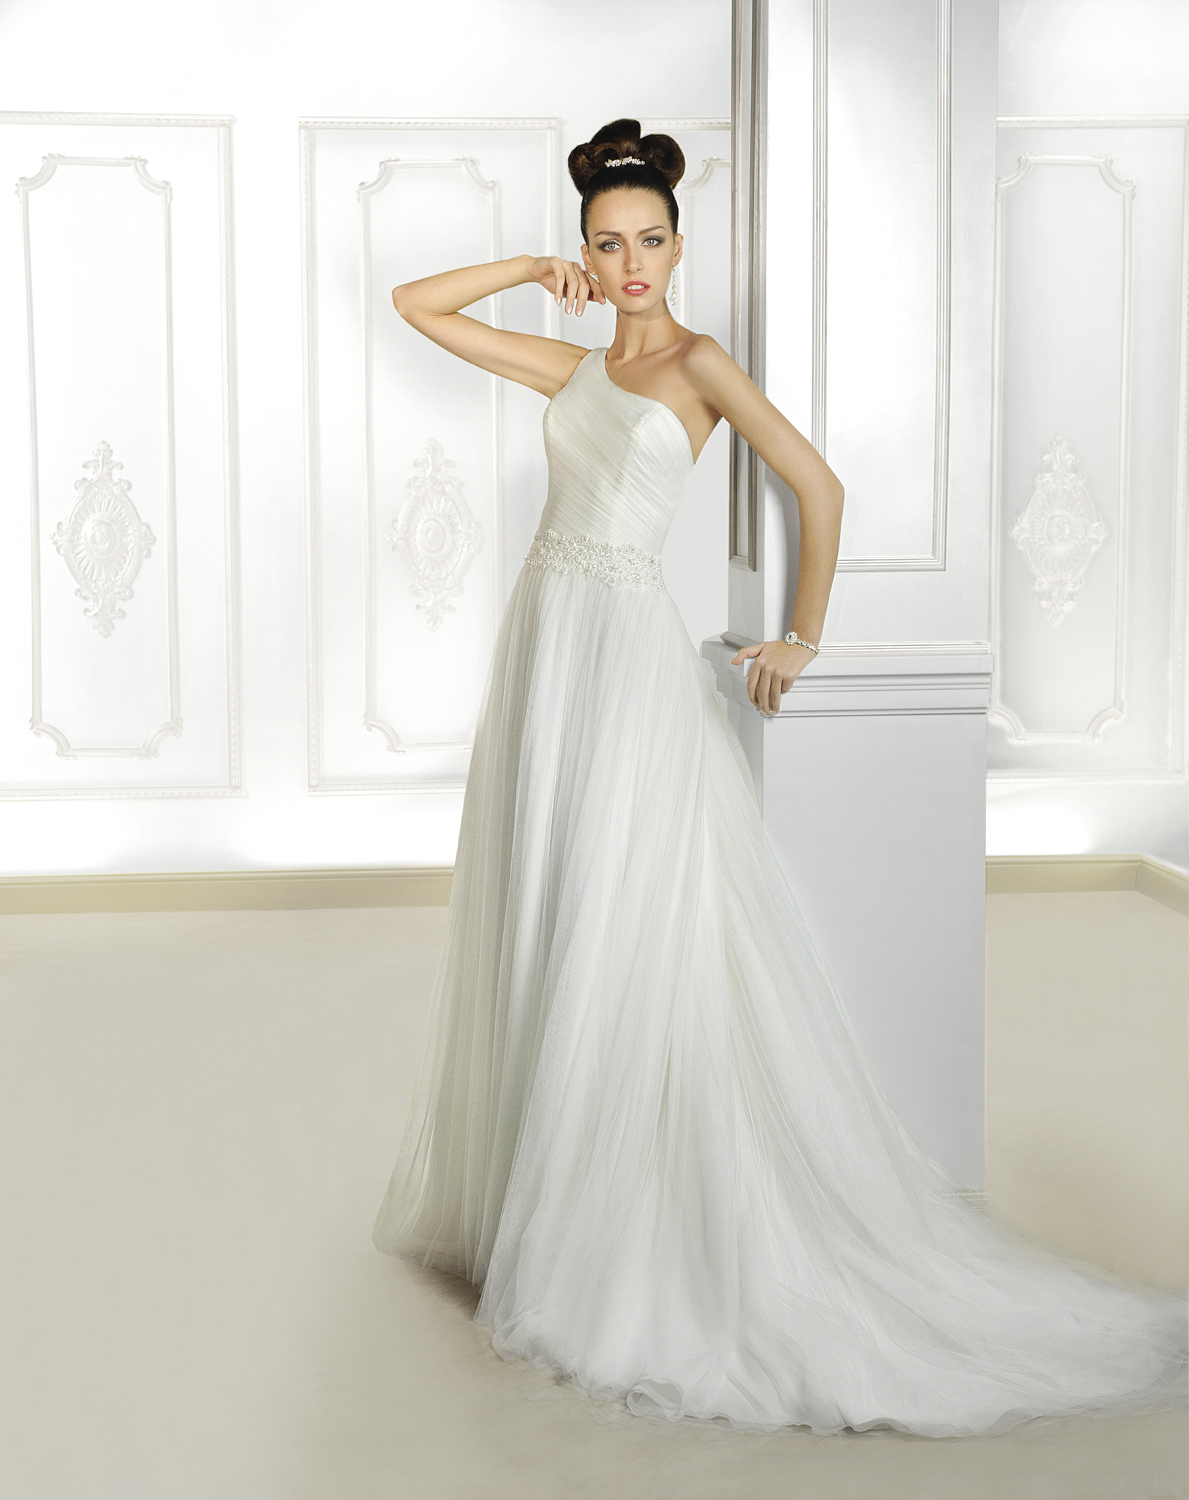 Simple Sheath/Column One Shoulder Beading Lace Sweep/Brush Train Tulle Wedding Dresses